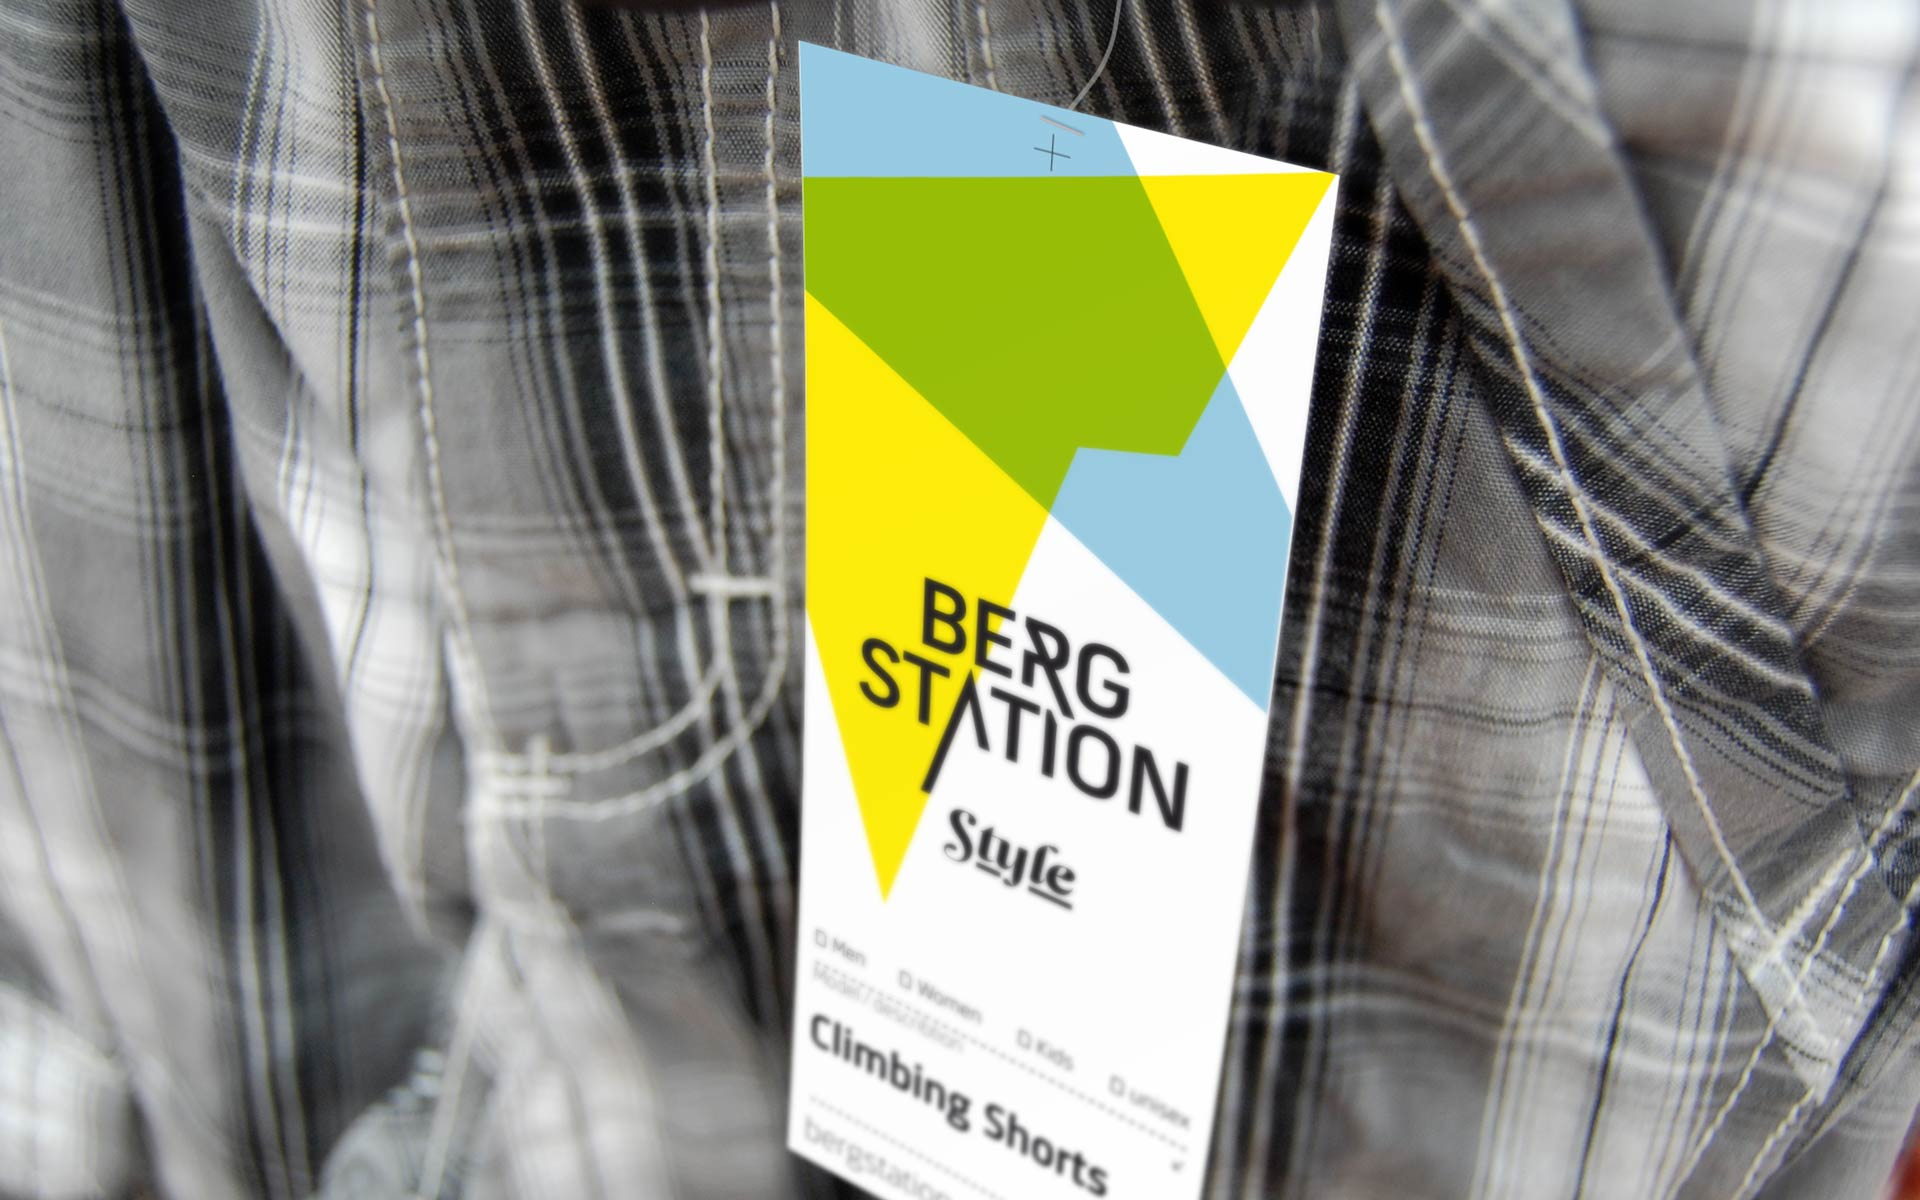 Bergstation Corporate Design, Hangtag, Corporate Fashion, Bekleidungslinie